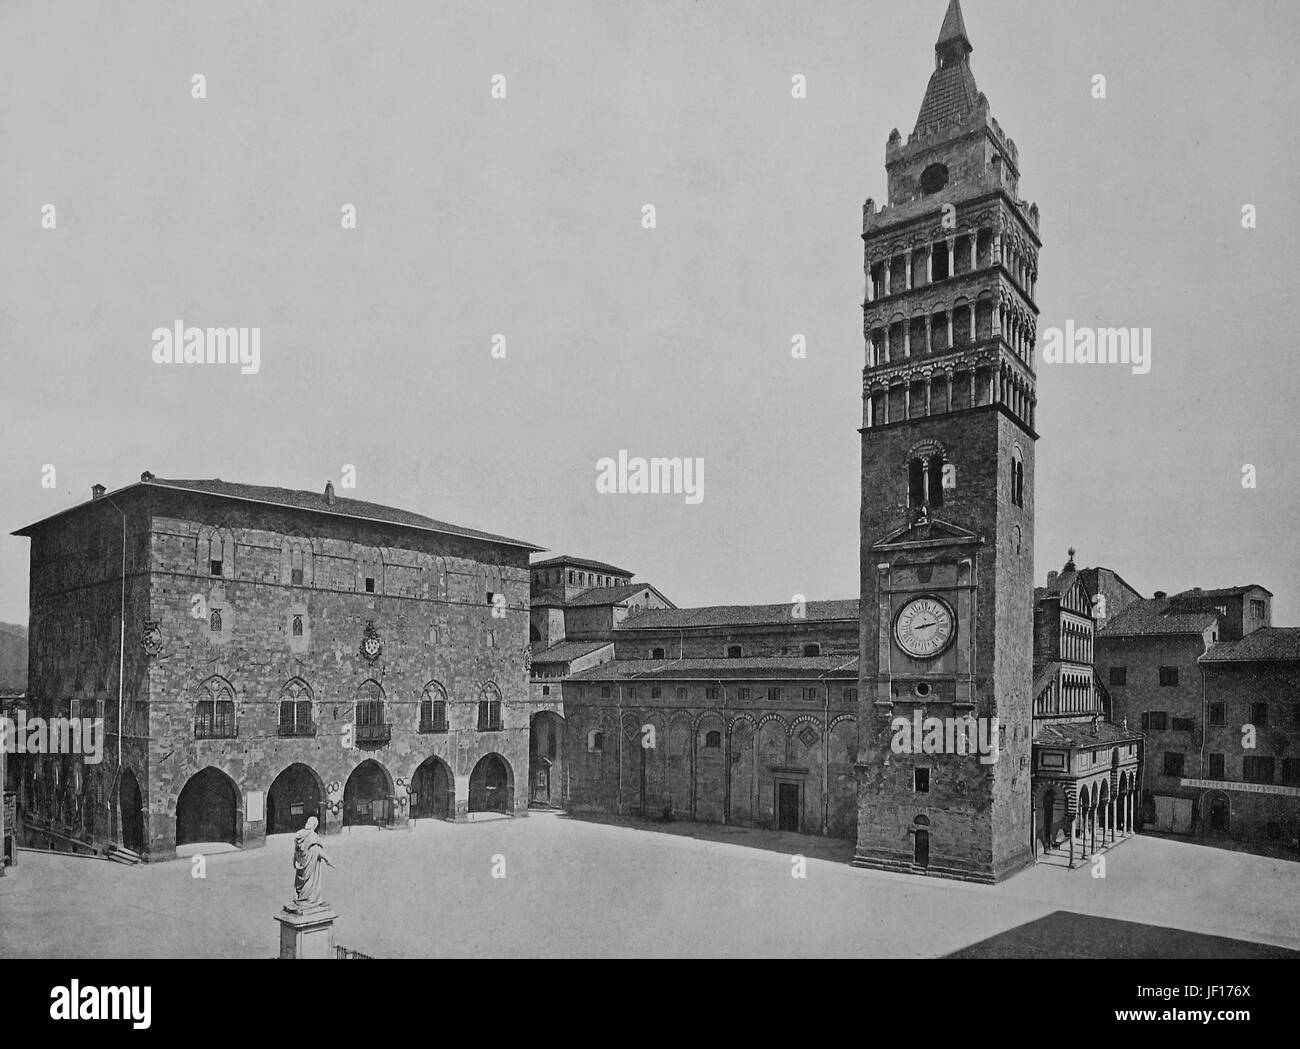 Historical photo of Pistoia, church S. Giovanni Fuorcivitas, bell tower of the cathedral in Piazza Duomo, Tuscany, - Stock Image